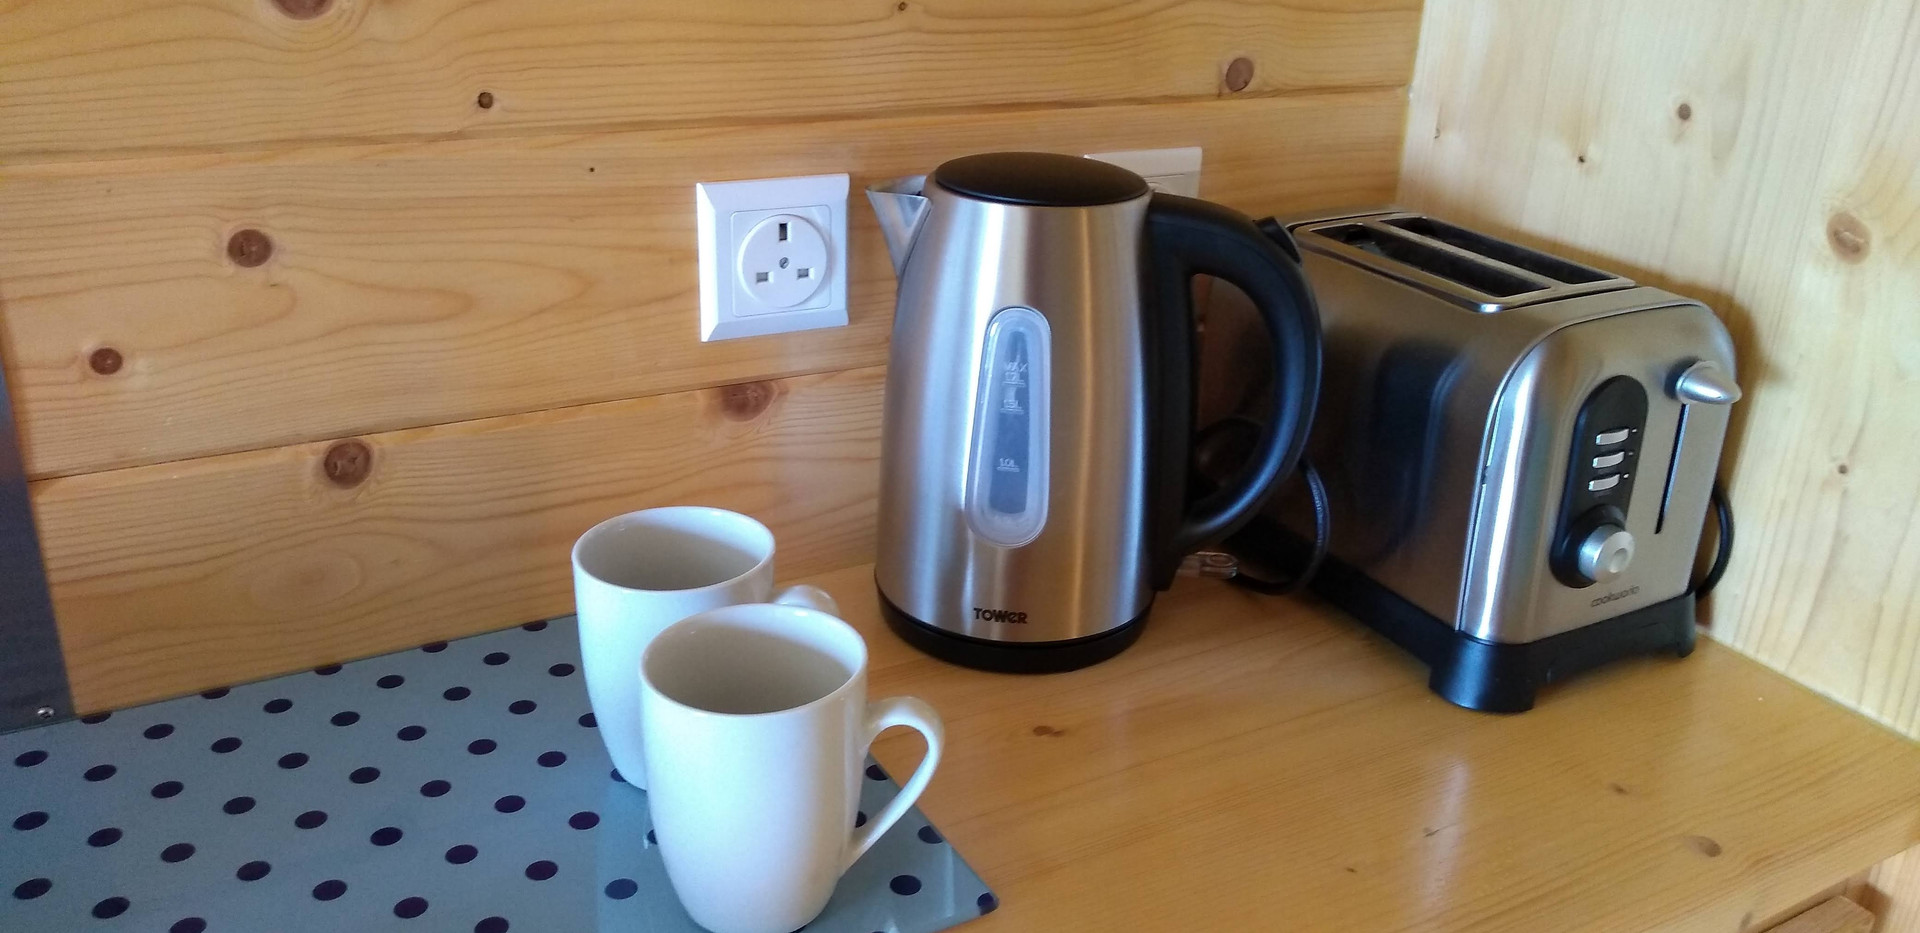 Toaster, Kettle, Plates, Glasses, Cutlery and Pans Provided.